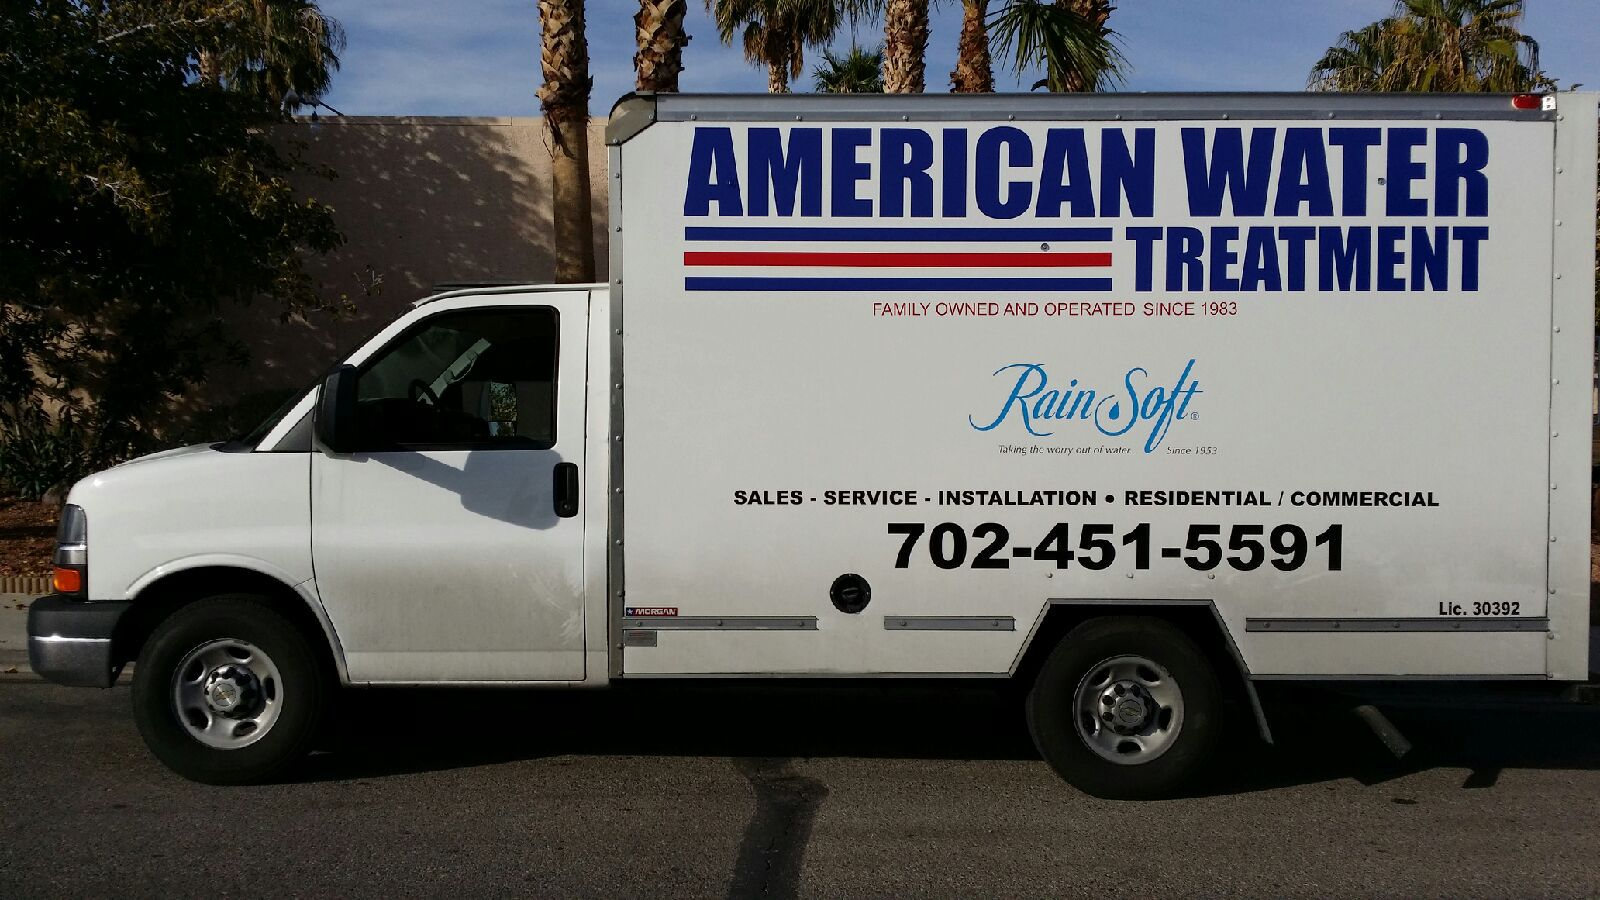 American Water Treatment - Las Vegas Water Softener, Treatment & Purification